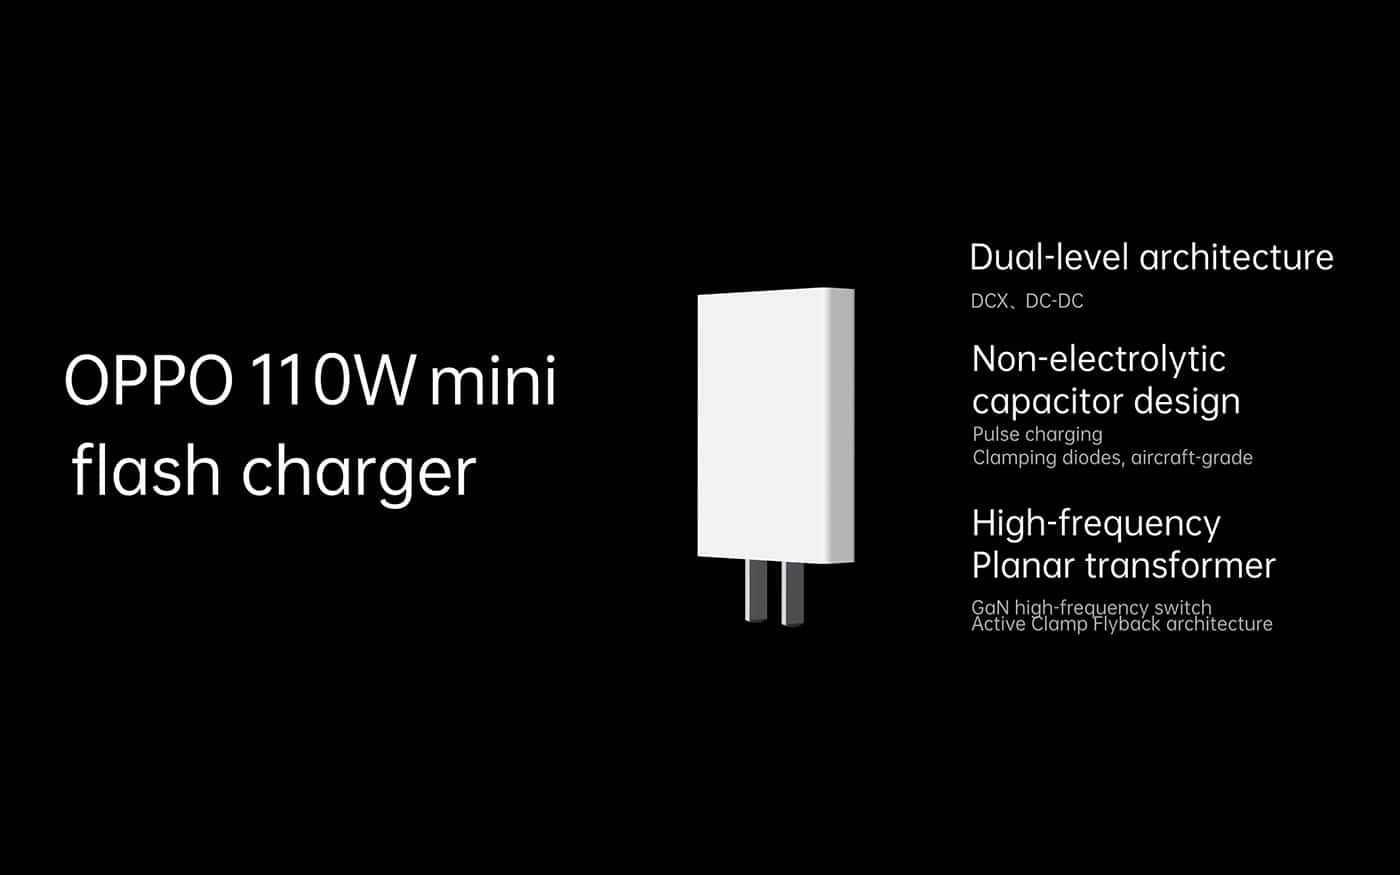 OPPO 110W Mini flash charger charger image 2